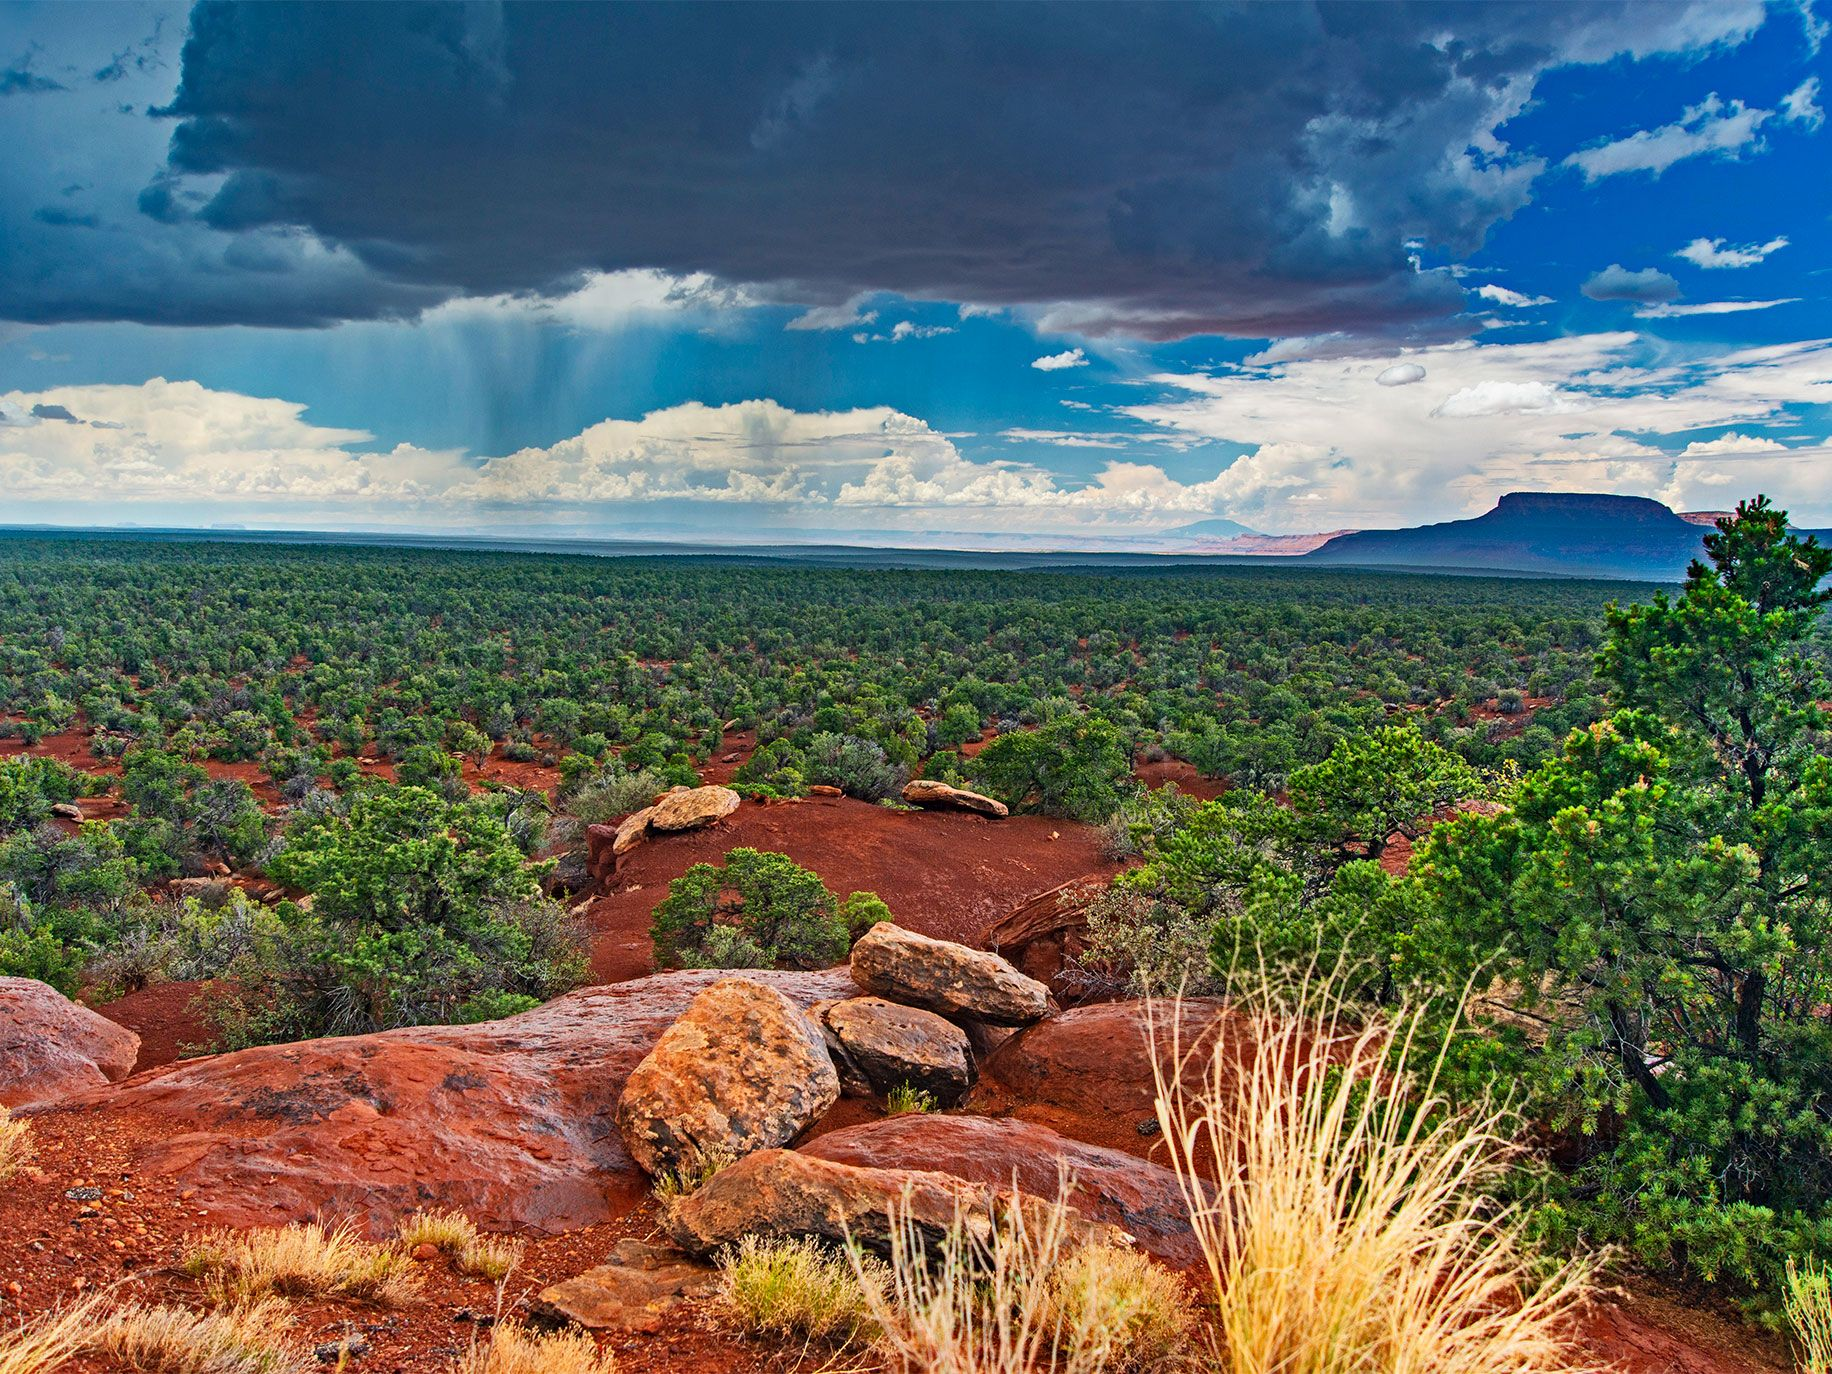 A summer thundershower drifts across a desert forest on Cedar Mesa, an area previously protected as part of the Bears Ears National Monument. Navajo Mountain, a Native American sacred site, rises in the far distance.